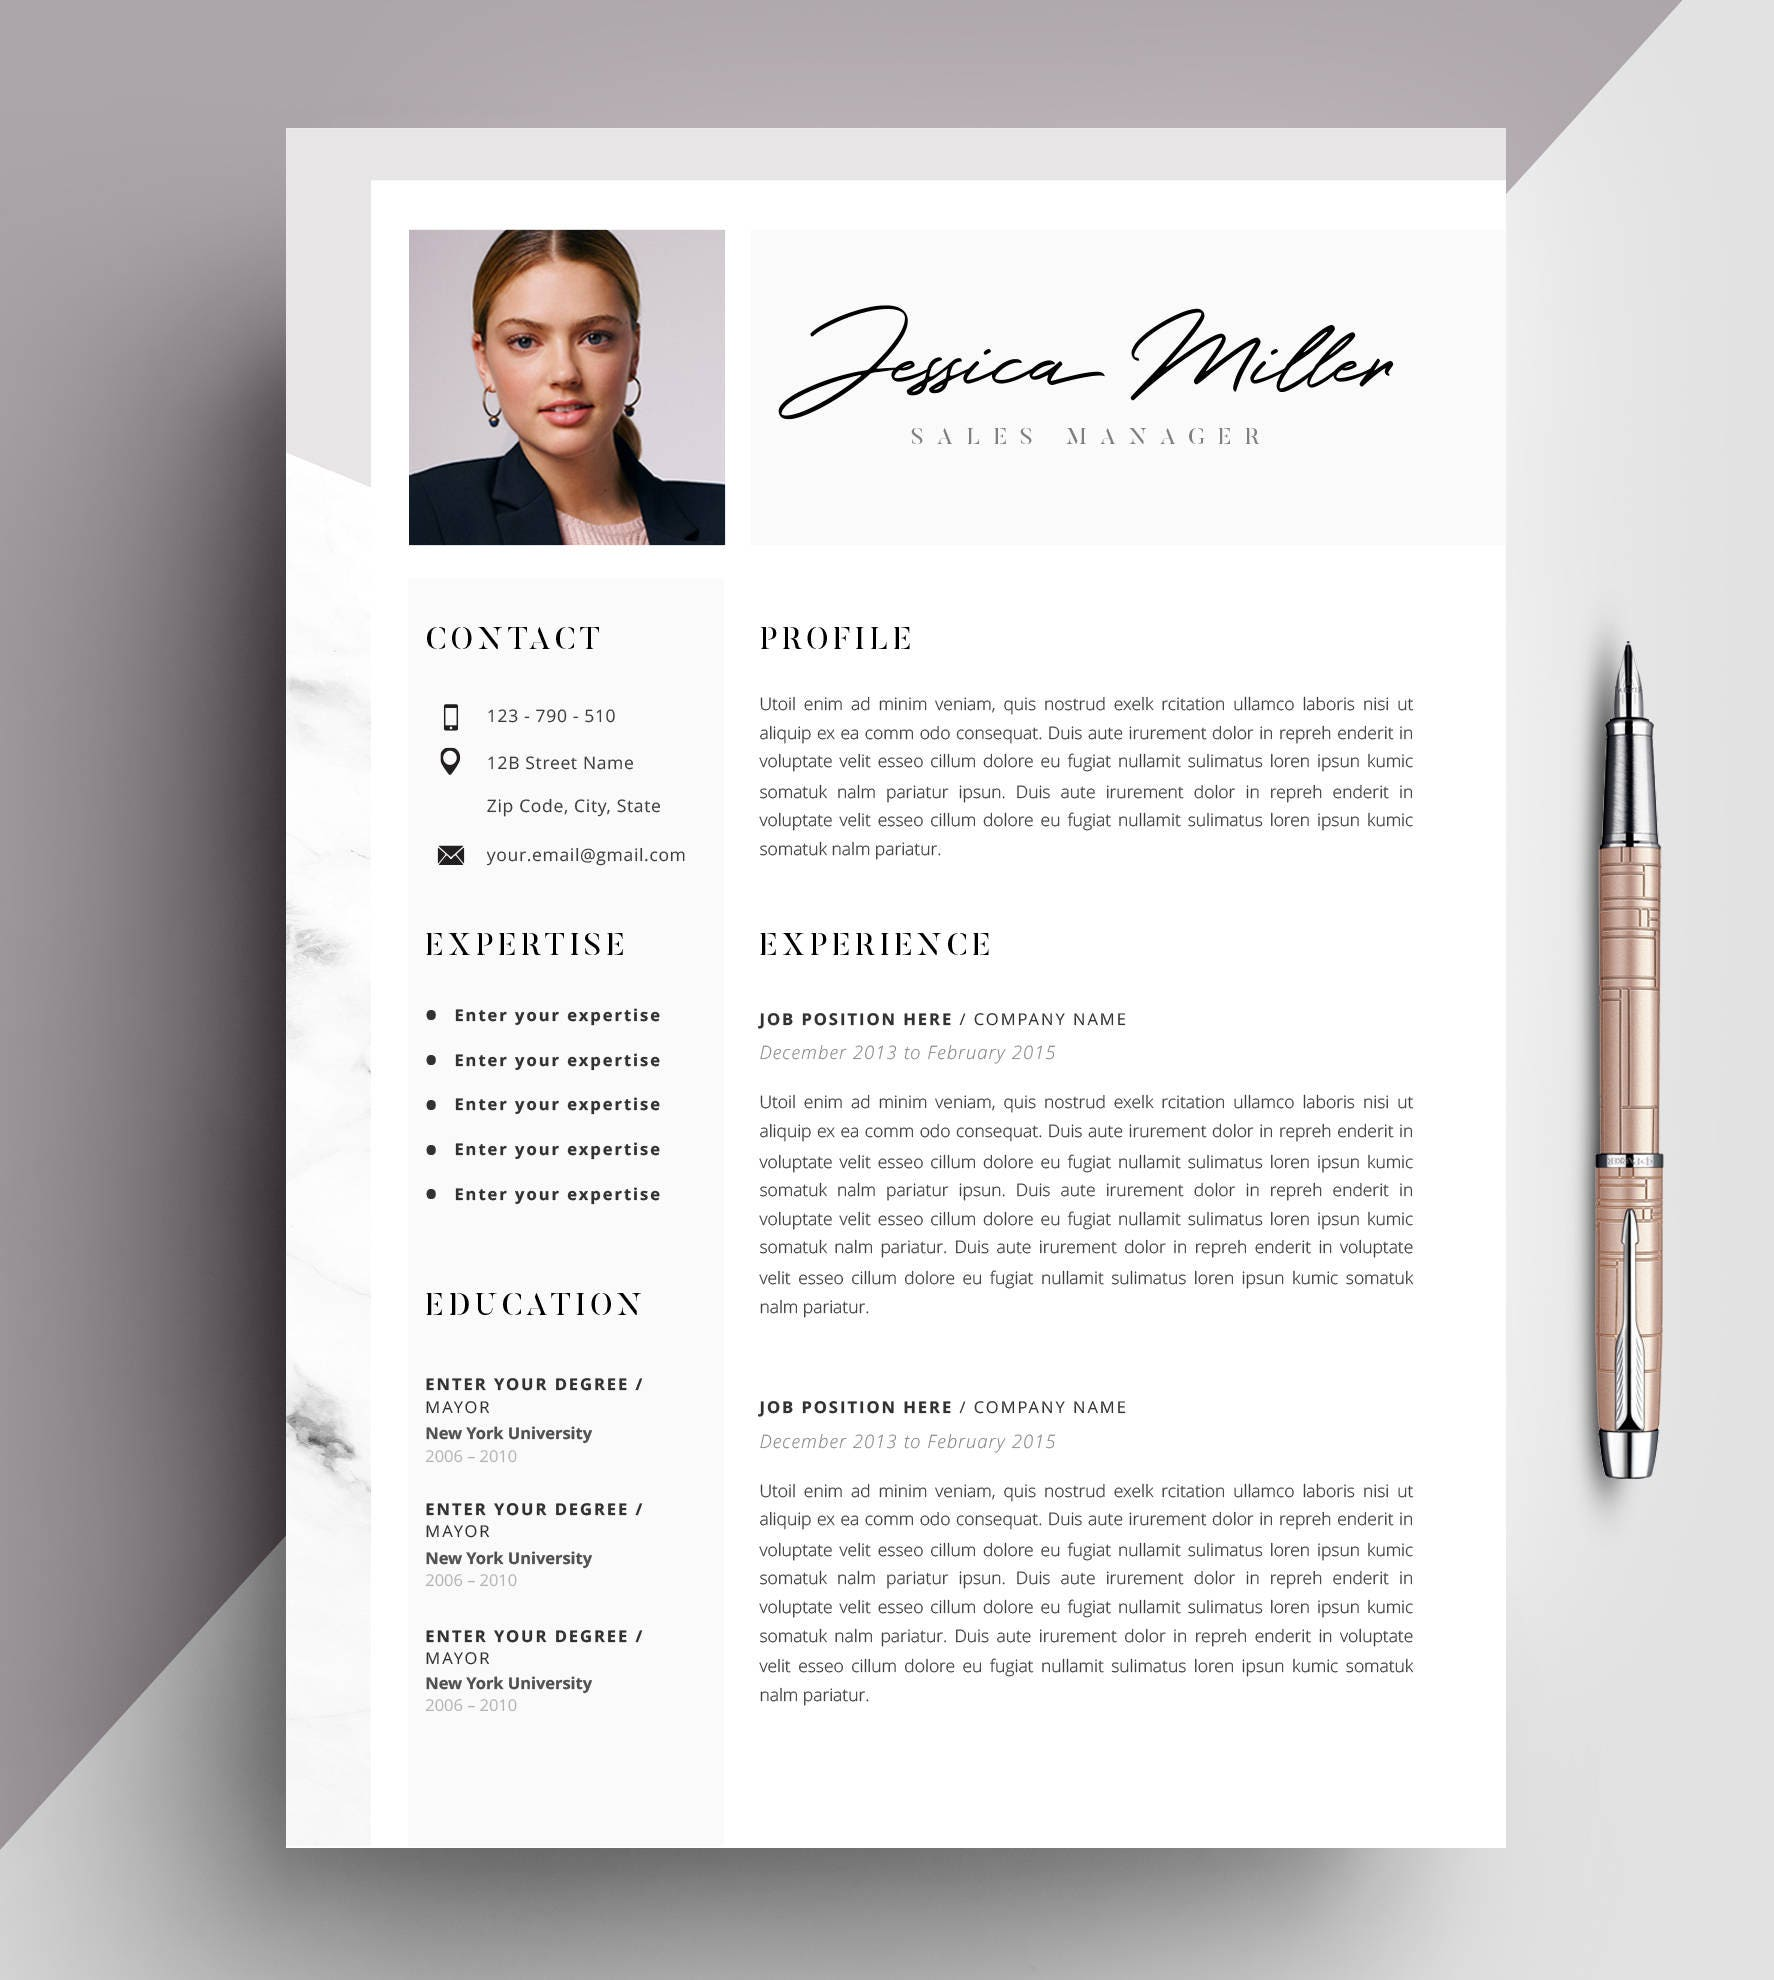 il_fullxfull.1353528628_ohgf One Page Resume Format Word File on sample for experienced person, for cardiology, templates that are free, template ms word for sales, experienced professional,